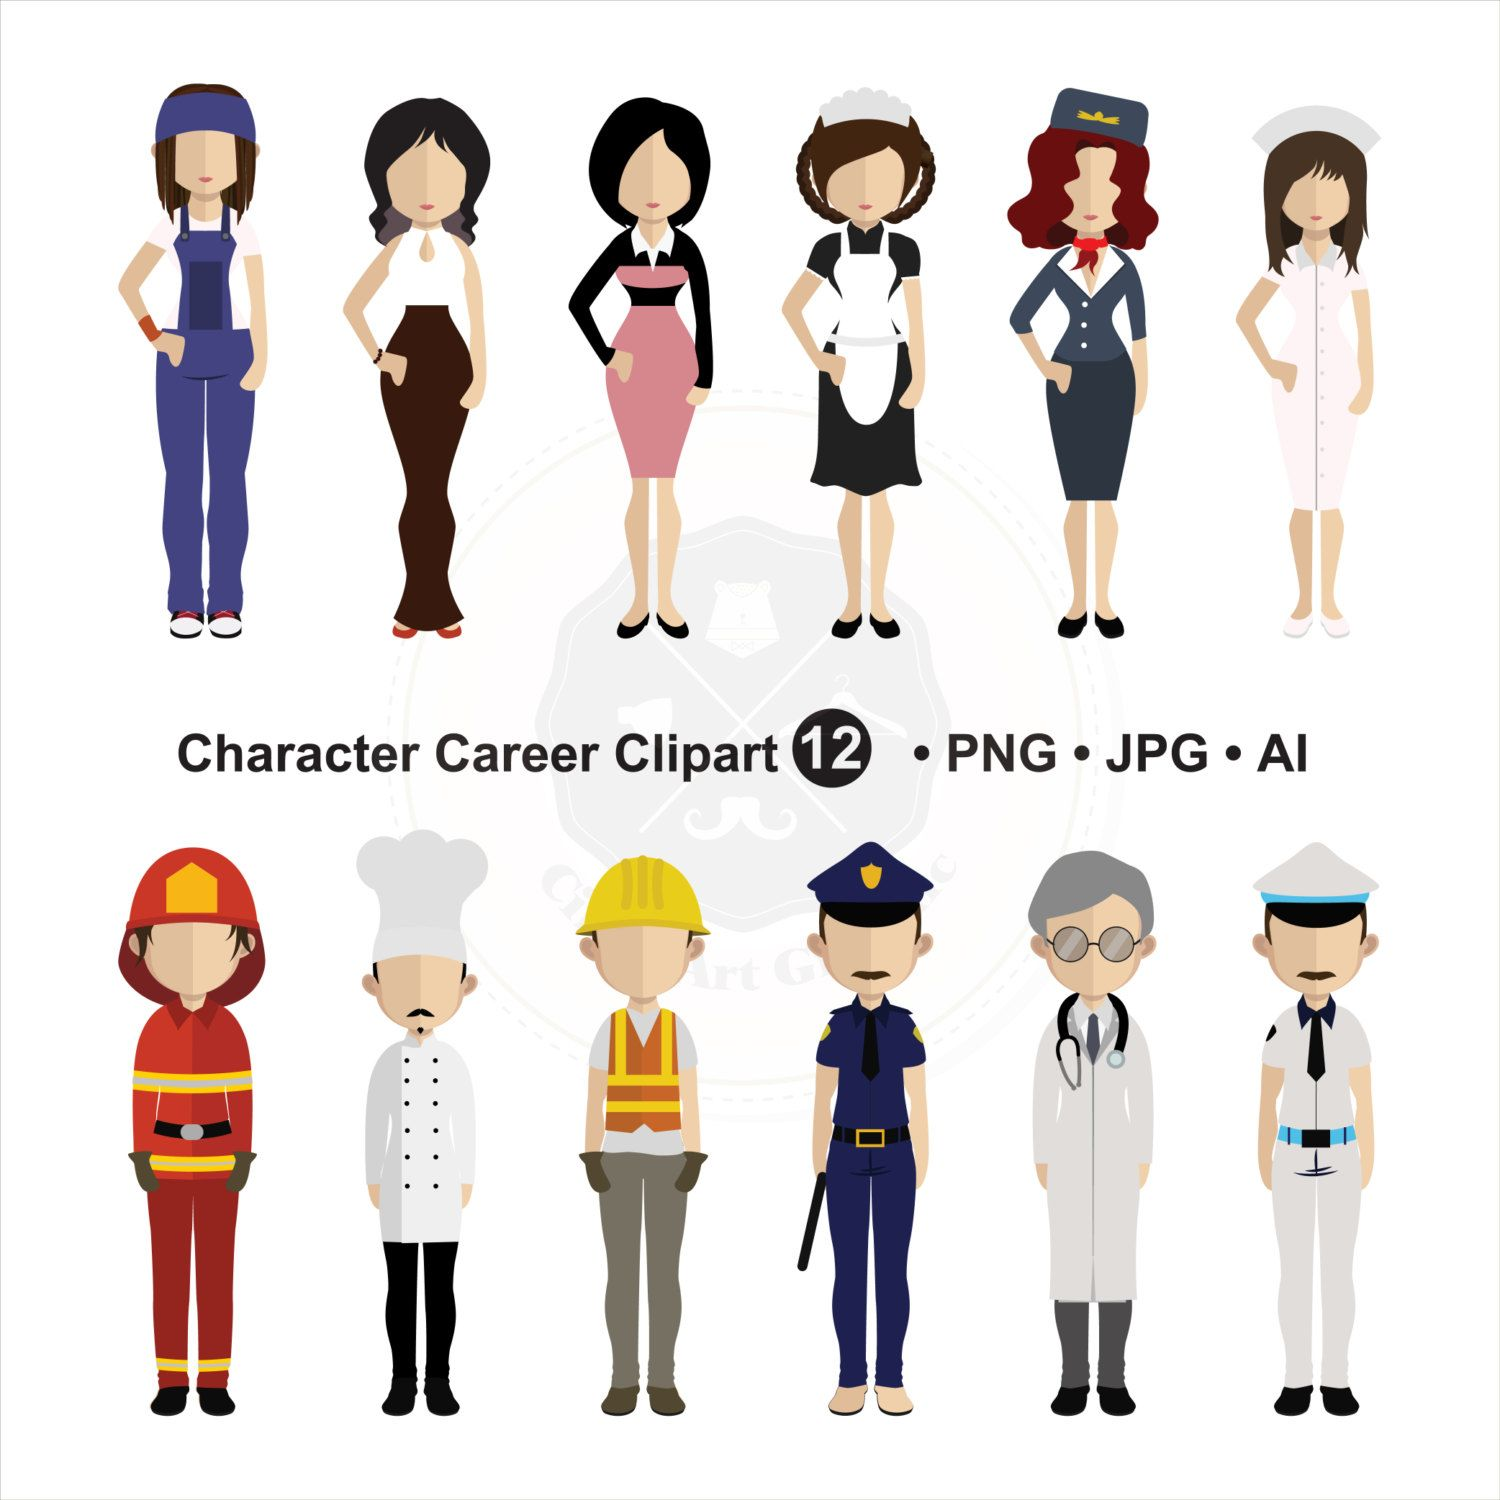 Character Career Clipart People Clipart Character Clipart Digital Download Buy 1 Get 1 Free Use Code 1get12016